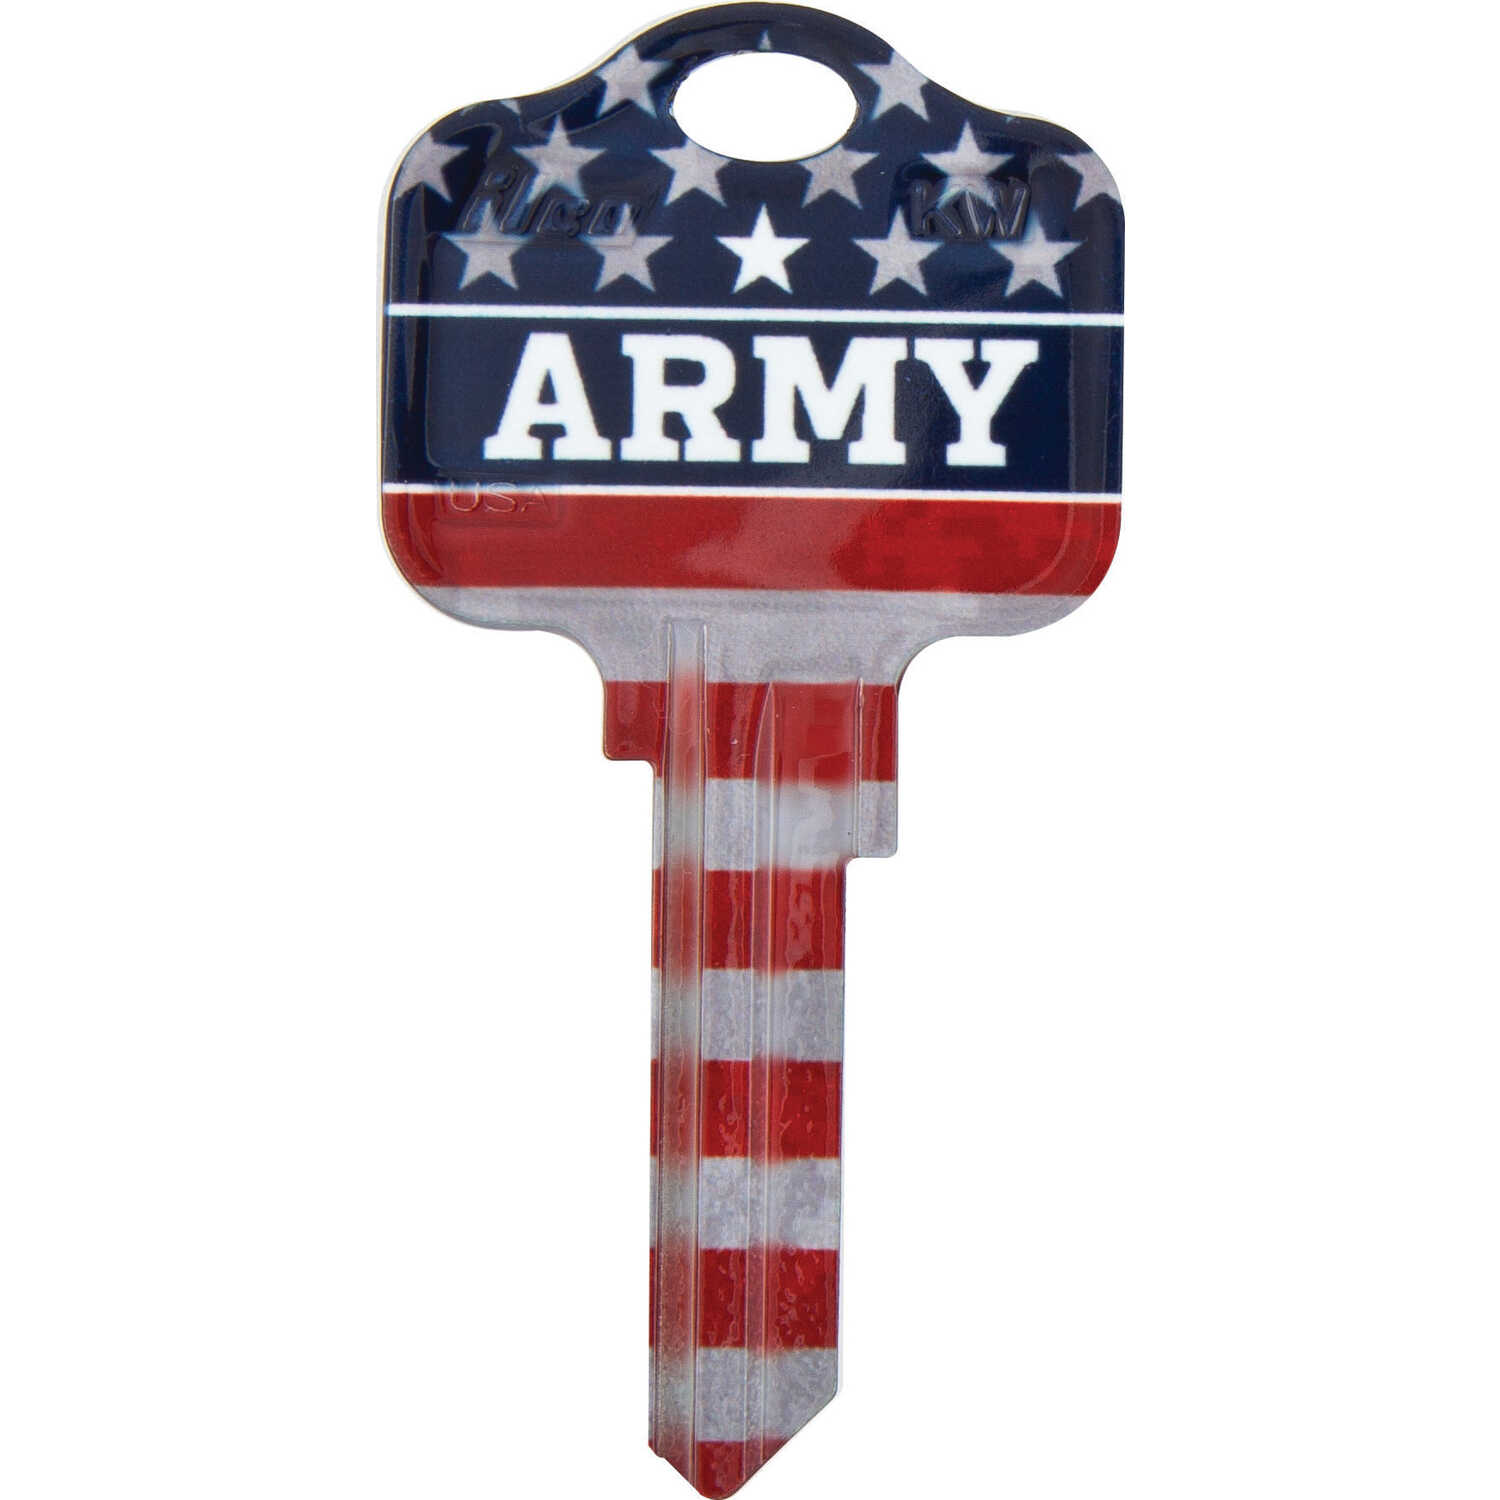 Kaba Ilco  Kwikset  Army/Flag  House/Office  Key Blank  Single sided